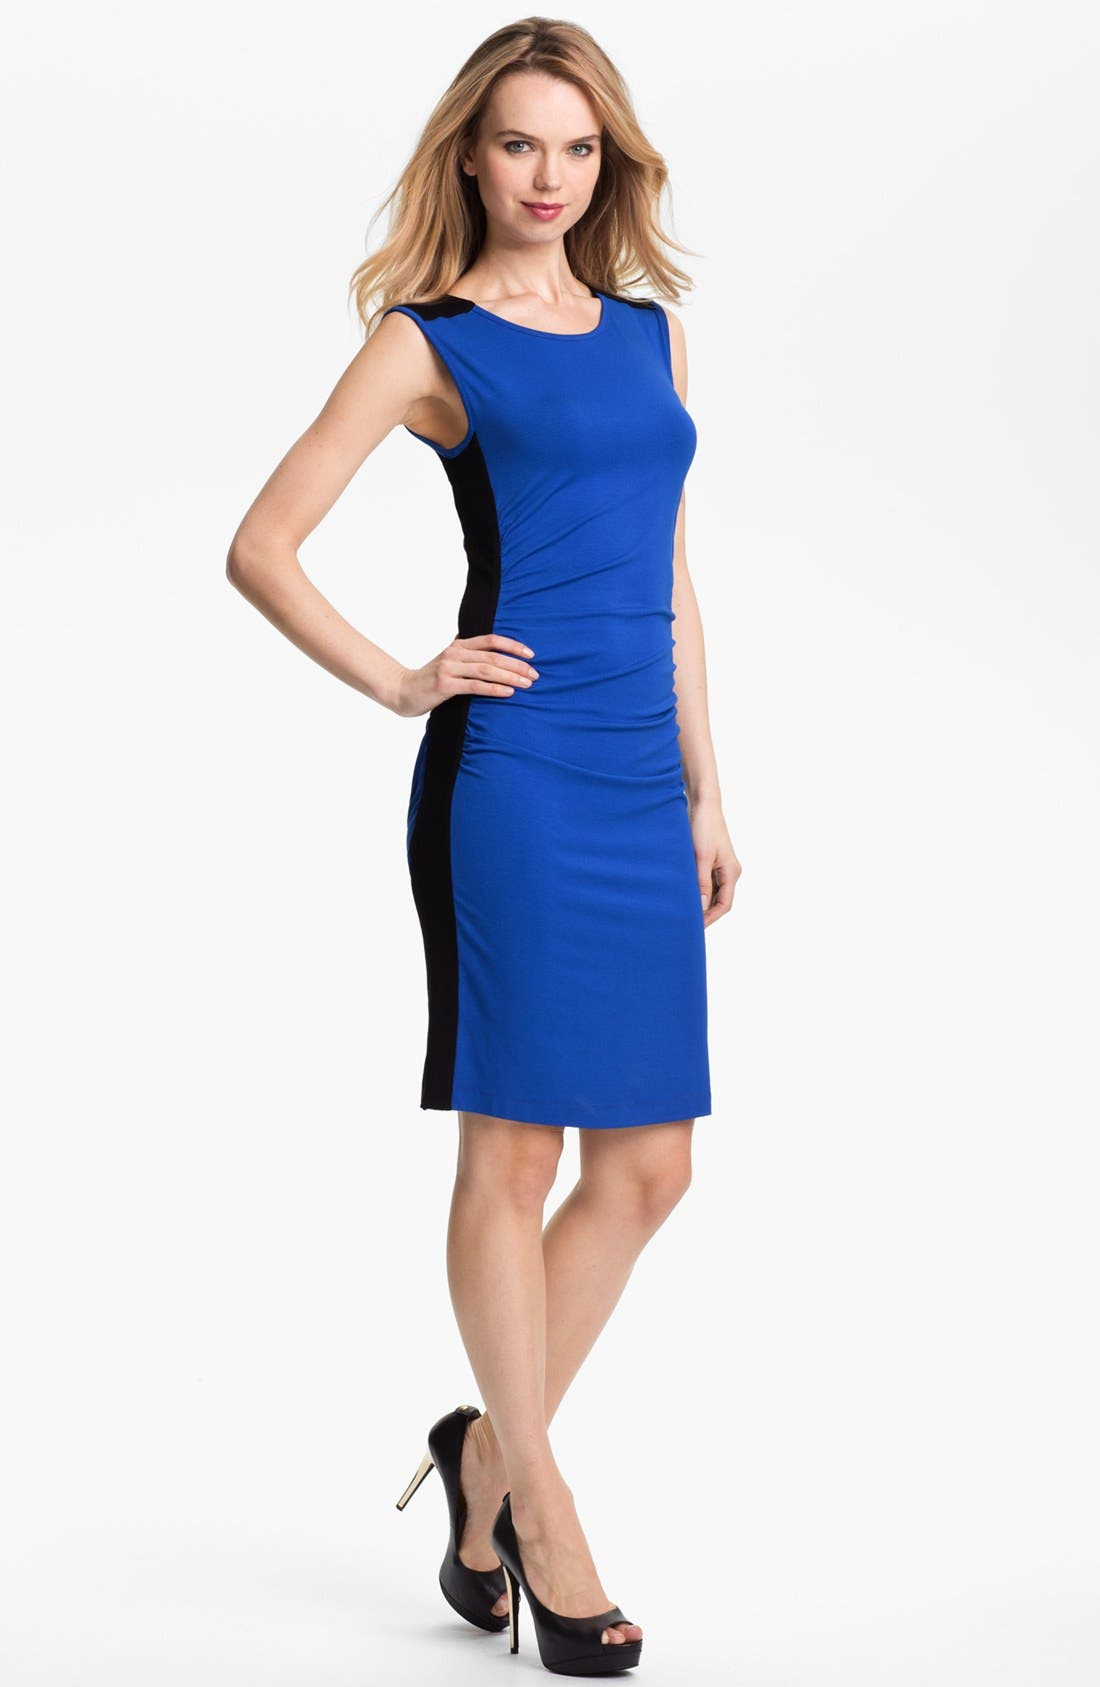 Main Image - Vince Camuto Colorblock Sleeveless Dress